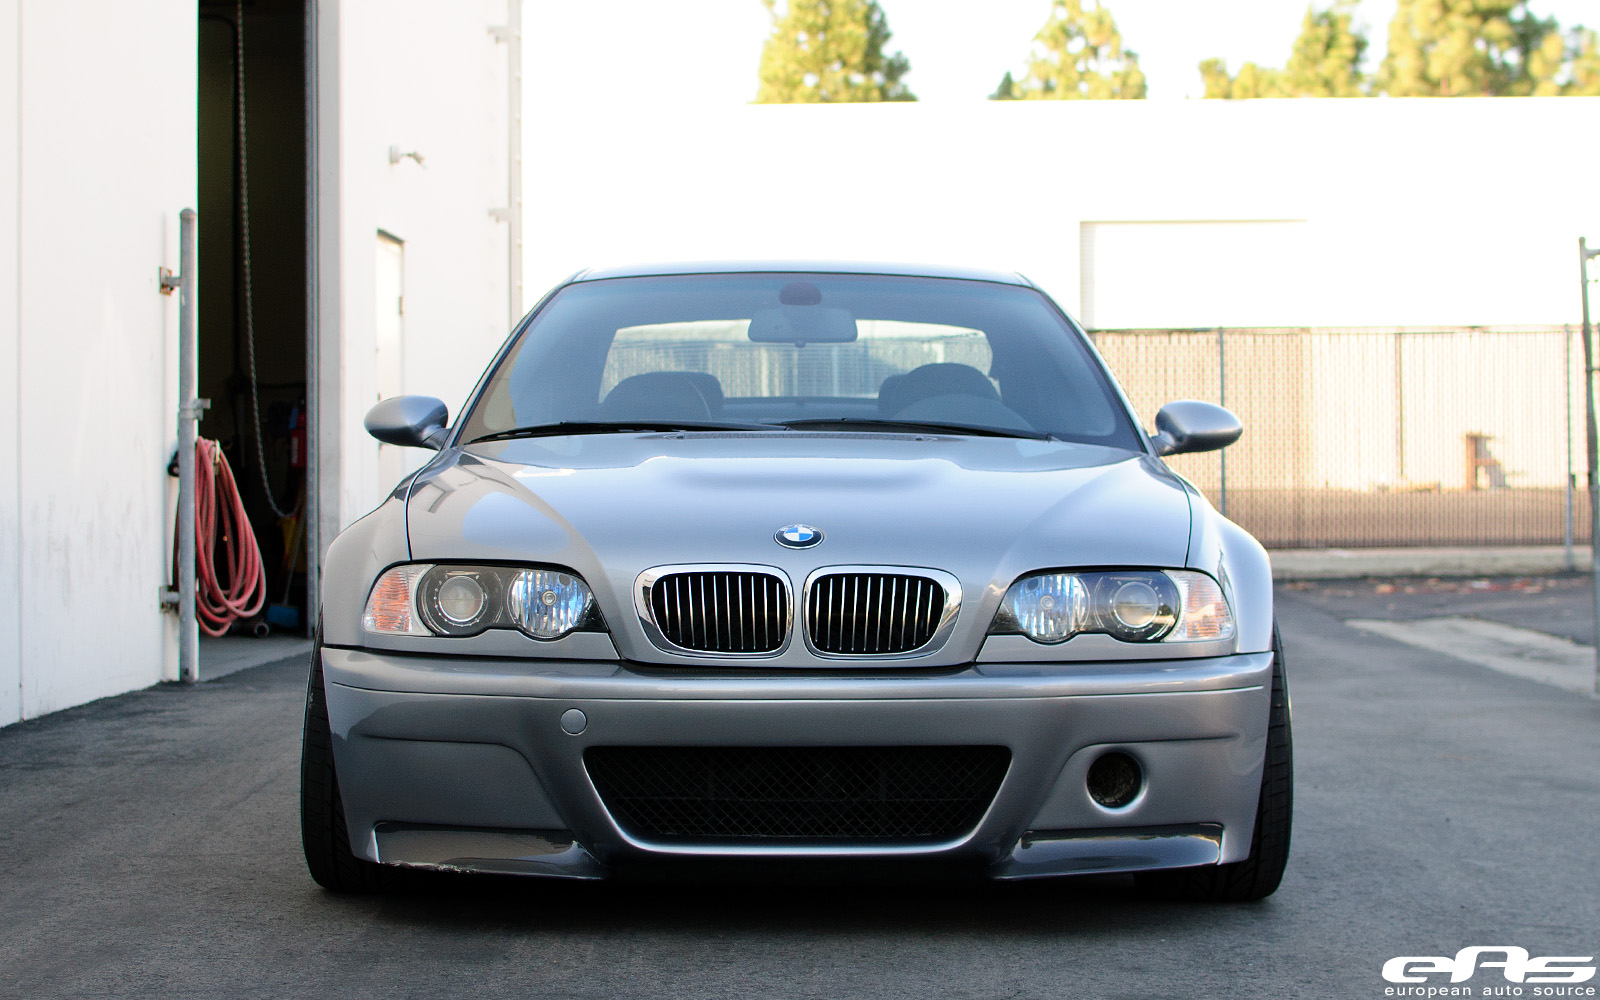 Elon Musk Car In Spac Wallpaper Another Custom Silver Gray Bmw E46 M3 Autoevolution